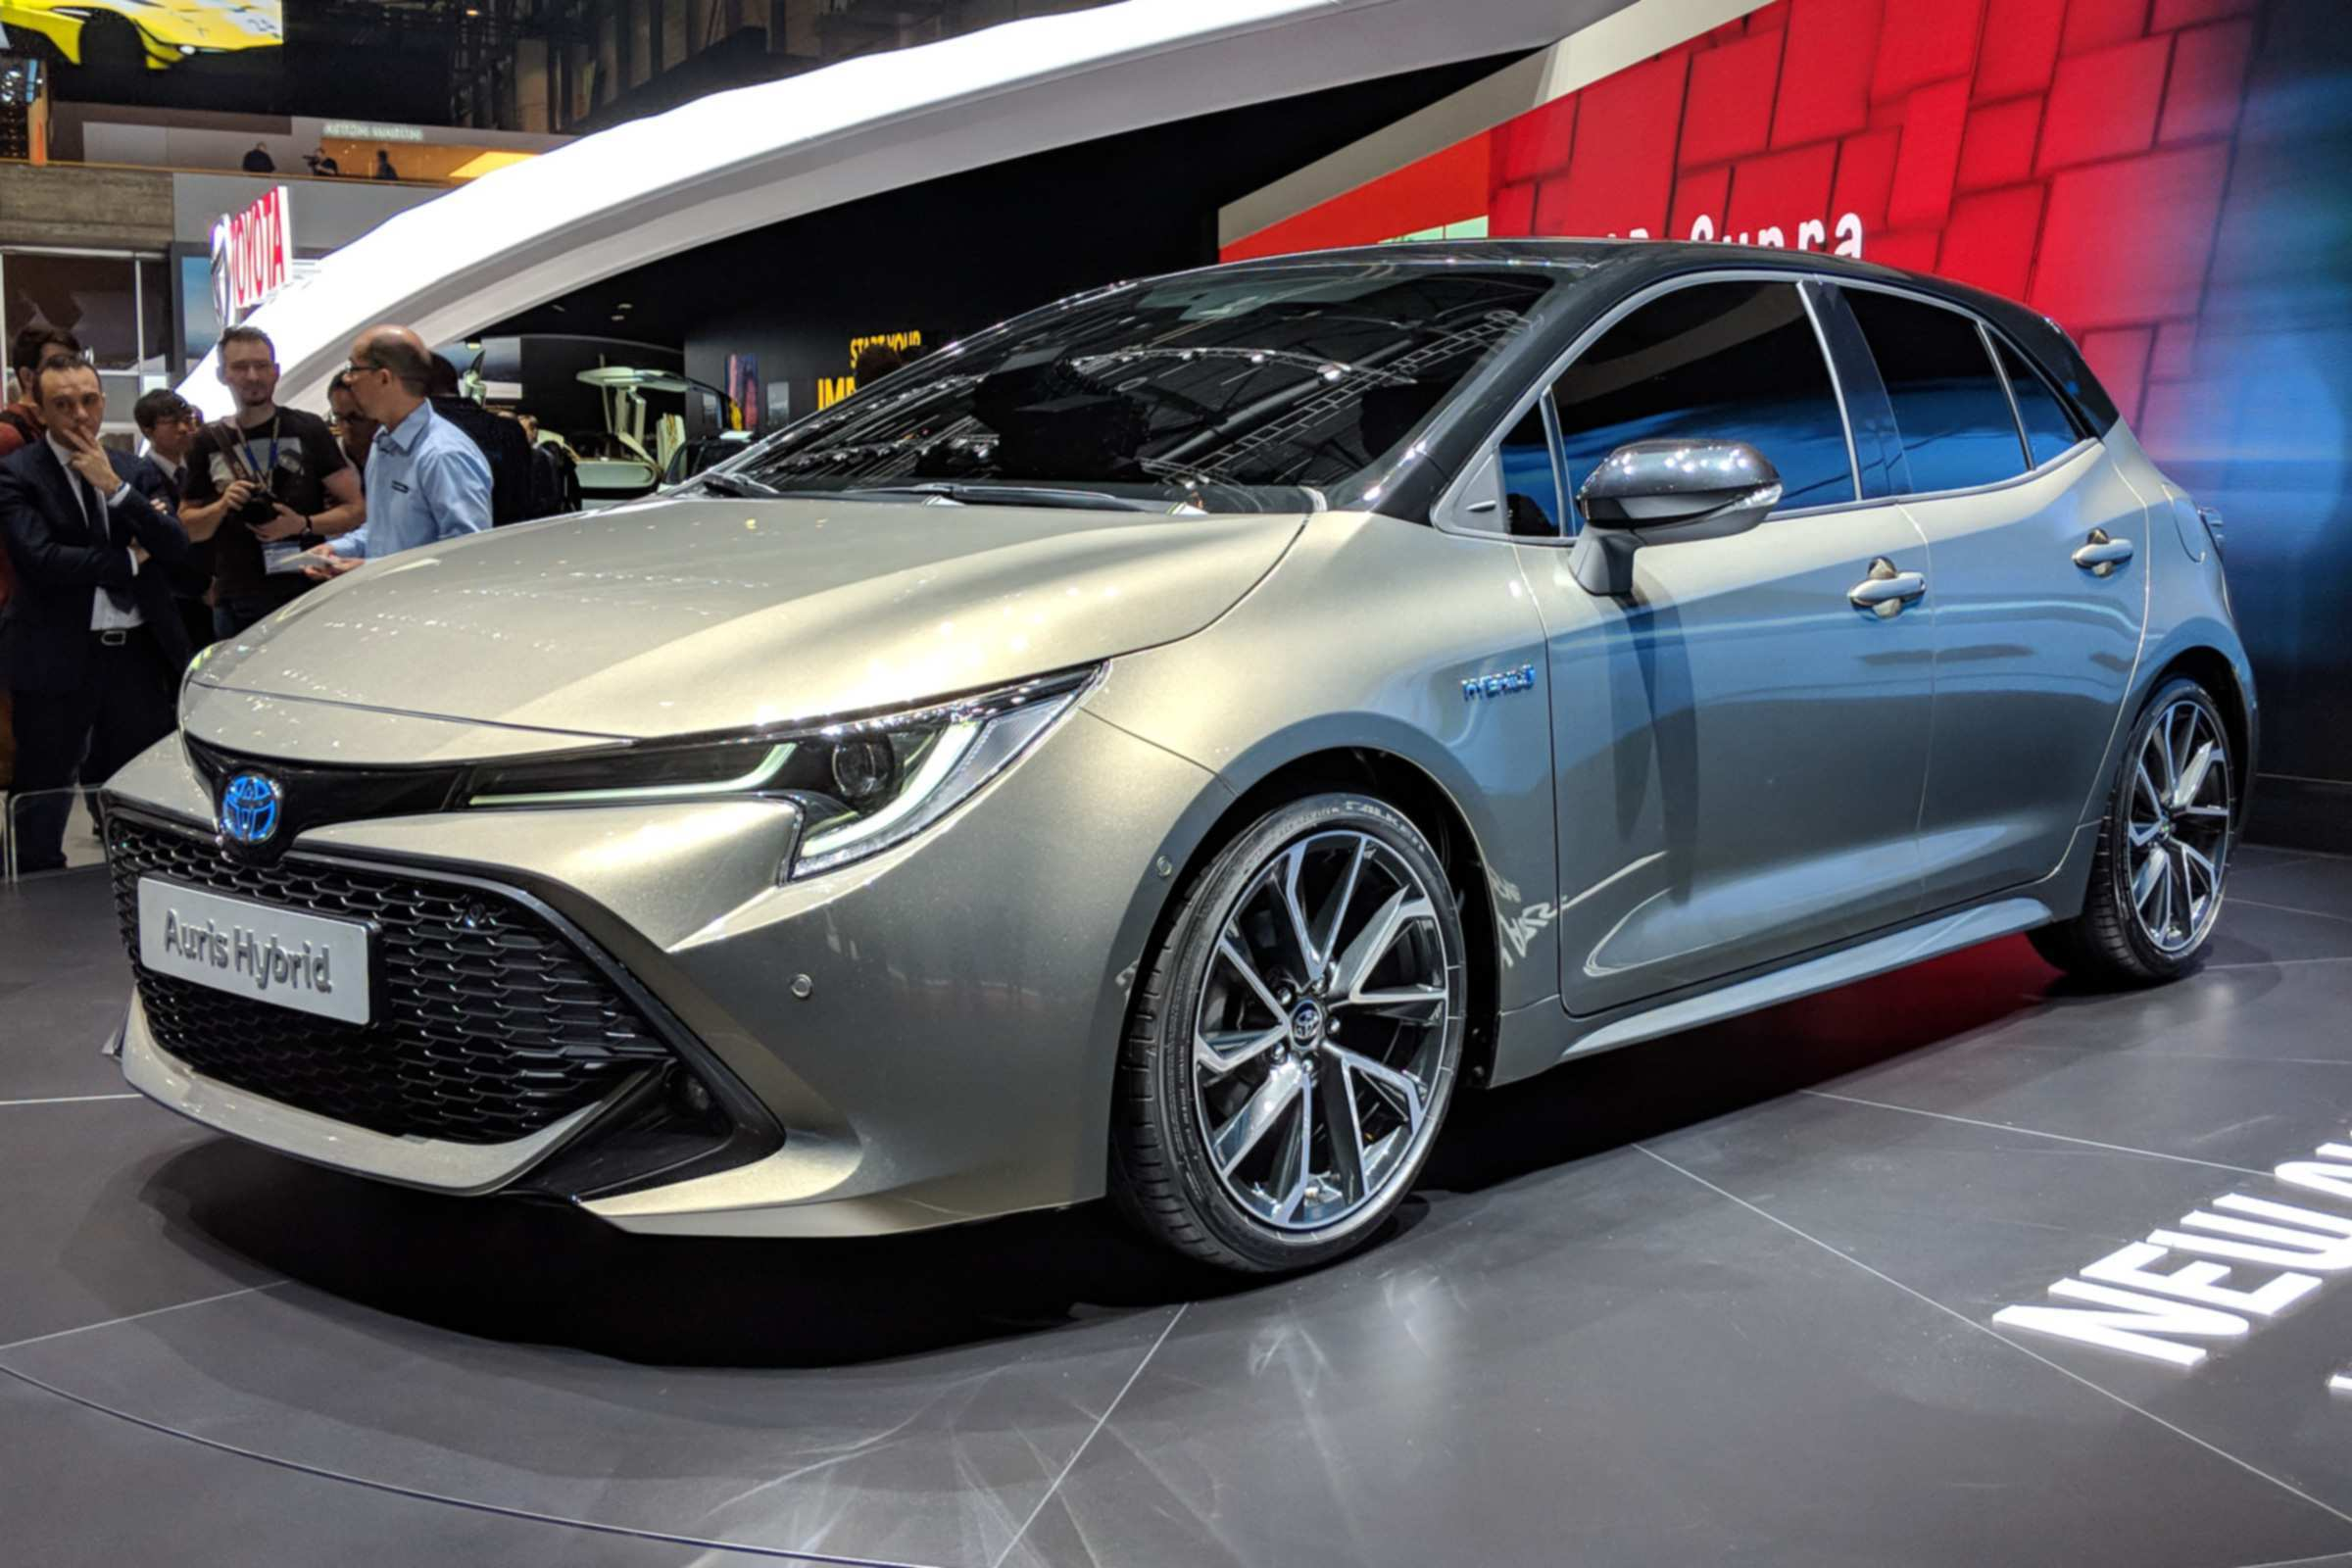 78 All New 2020 Toyota Auris Photos for 2020 Toyota Auris